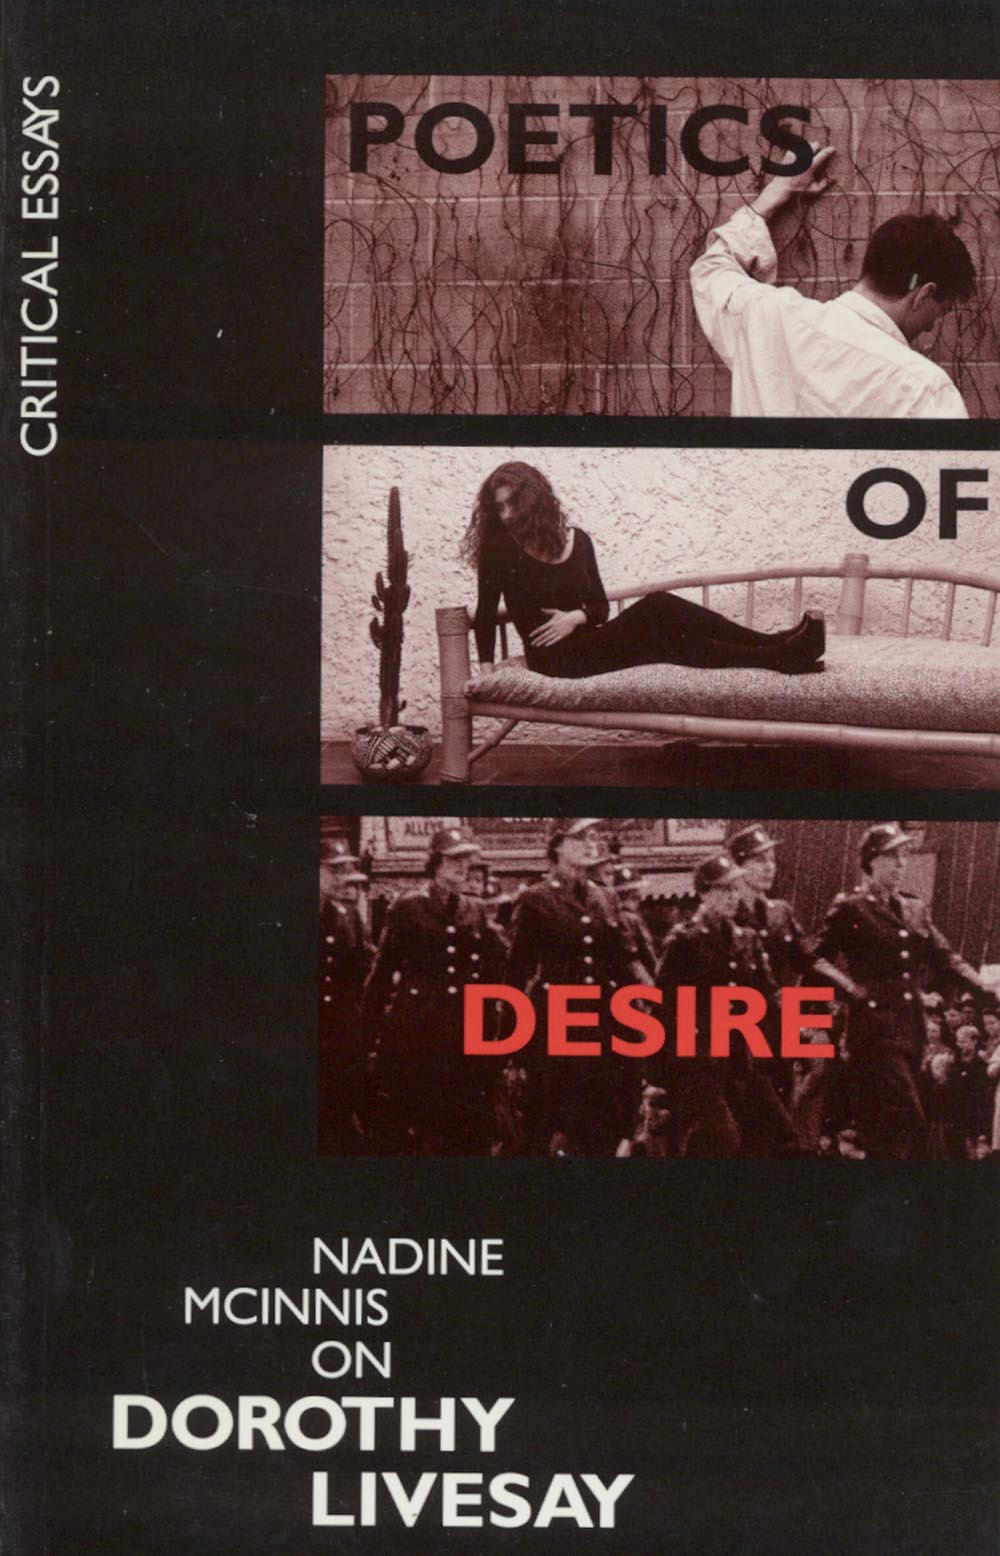 The Poetics of Desire by Nadine McInnis